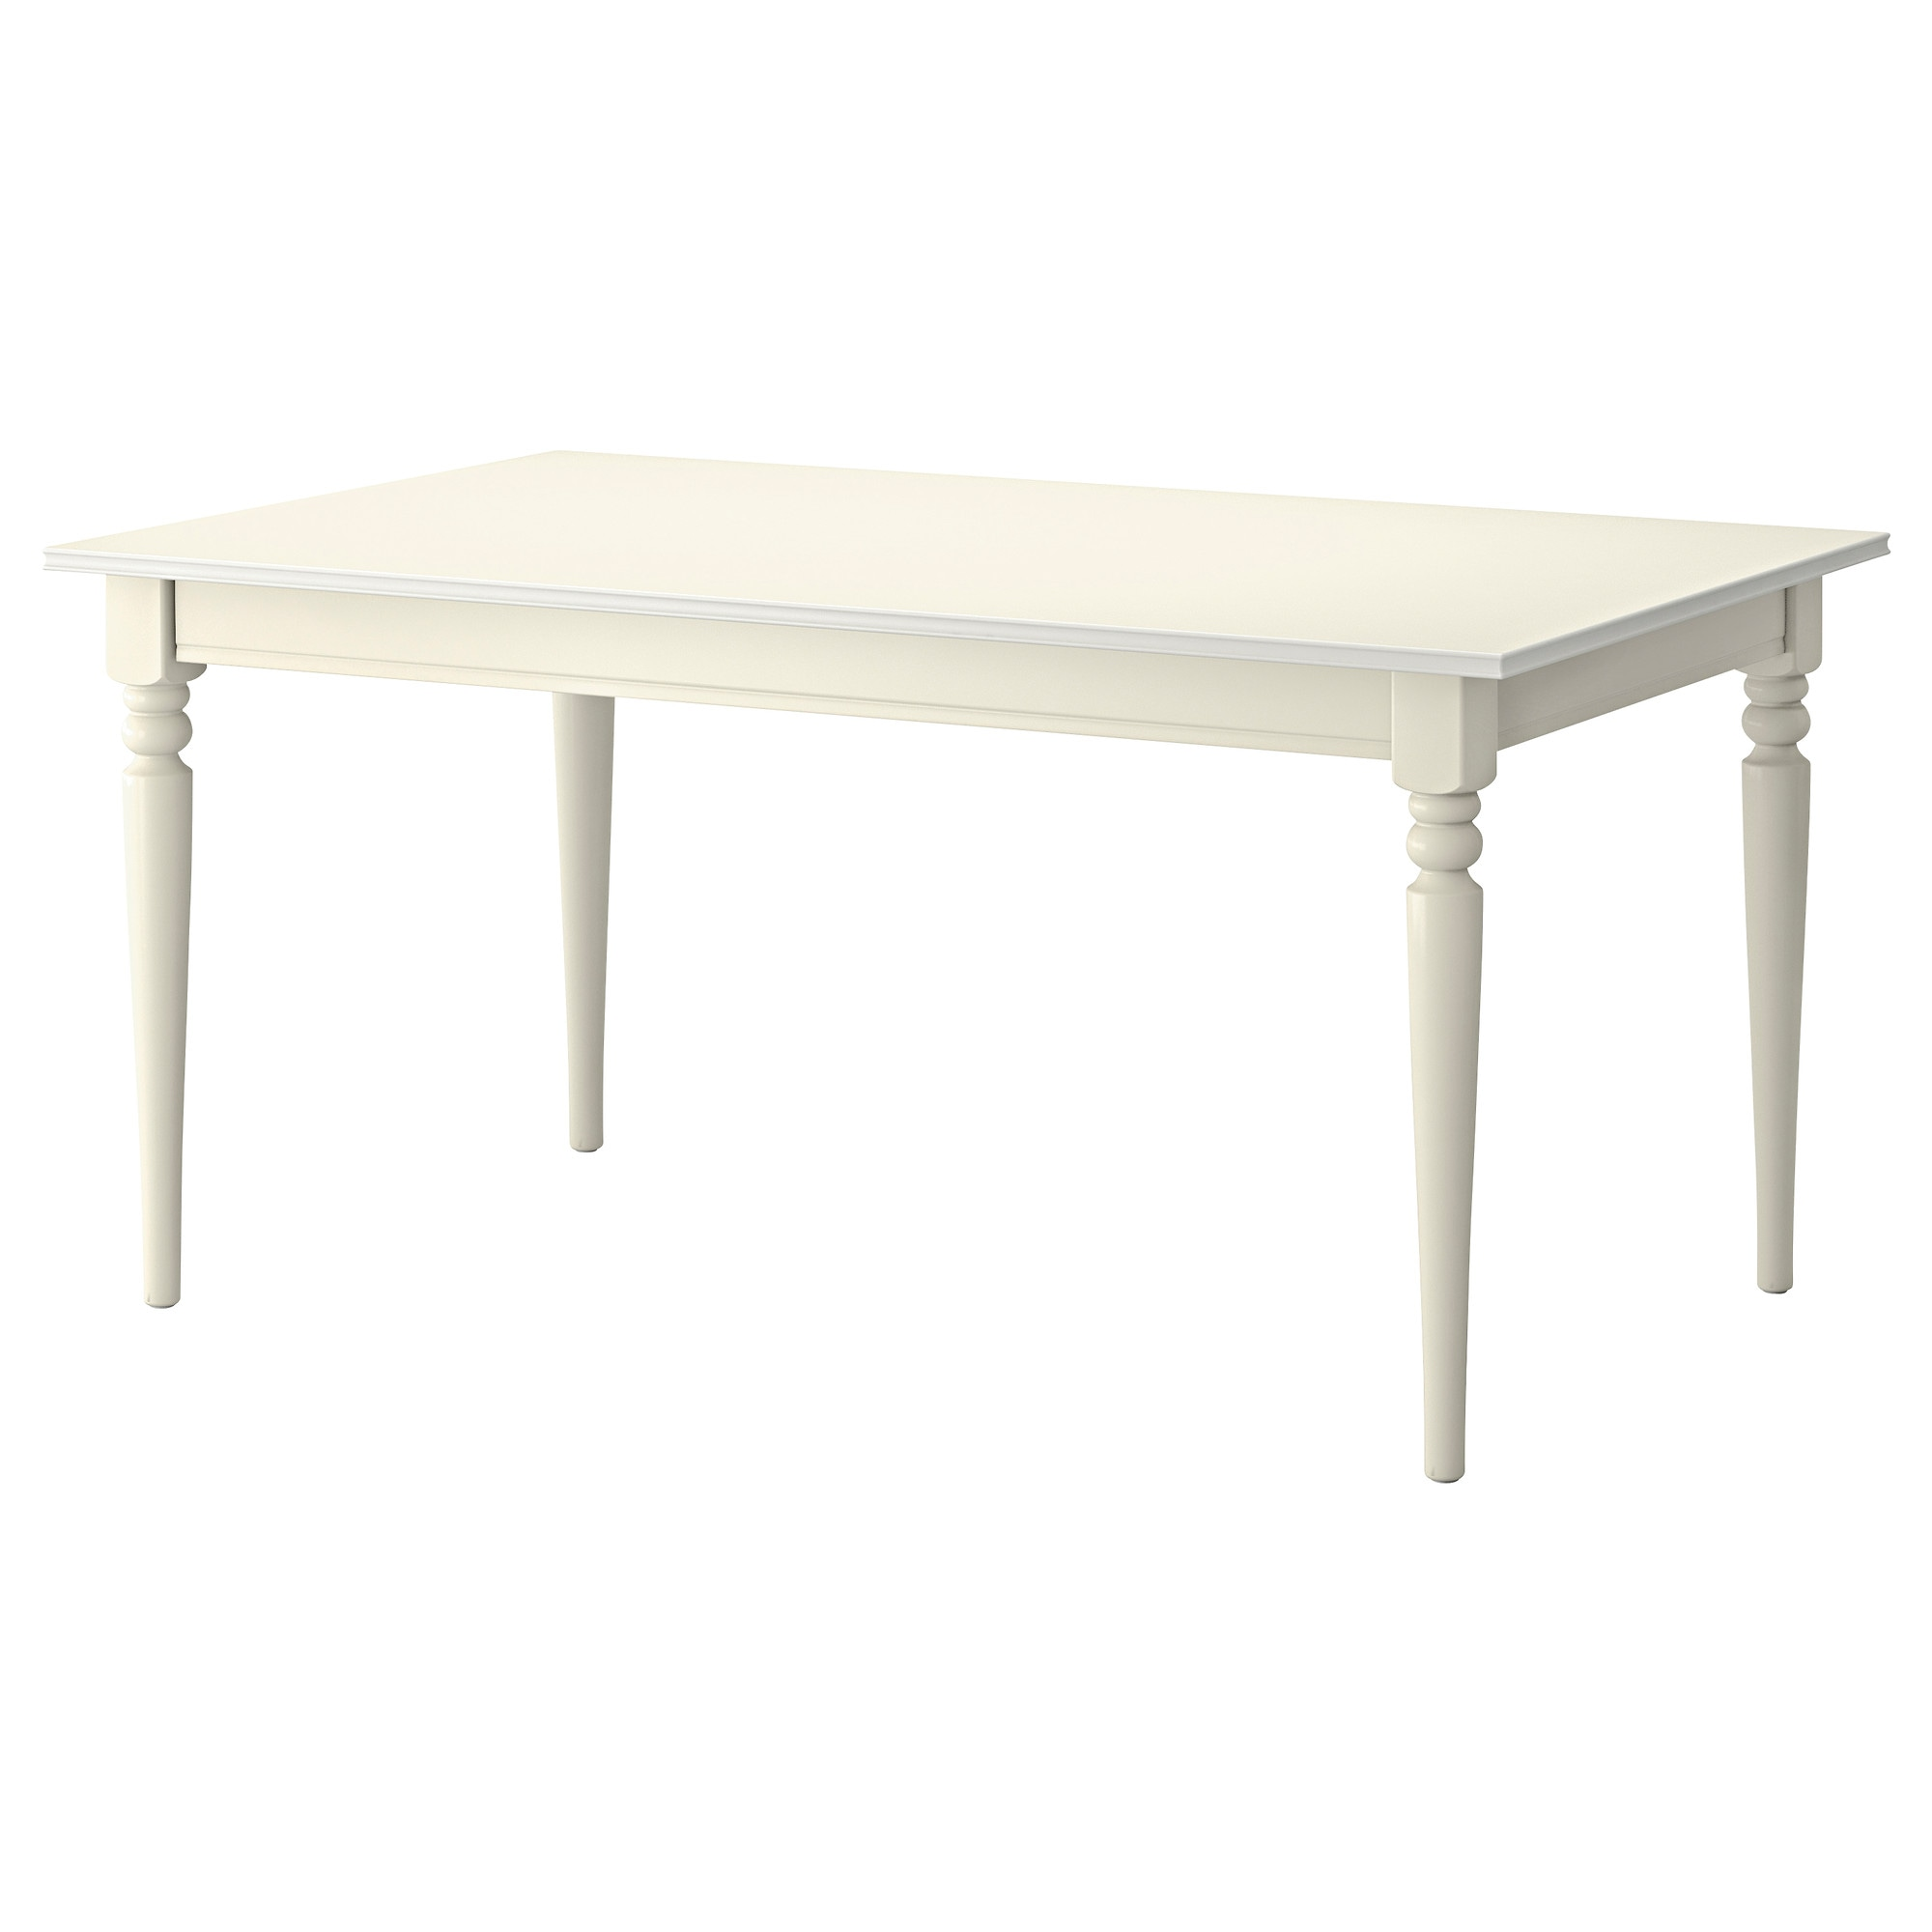 INGATORP Extendable table IKEA